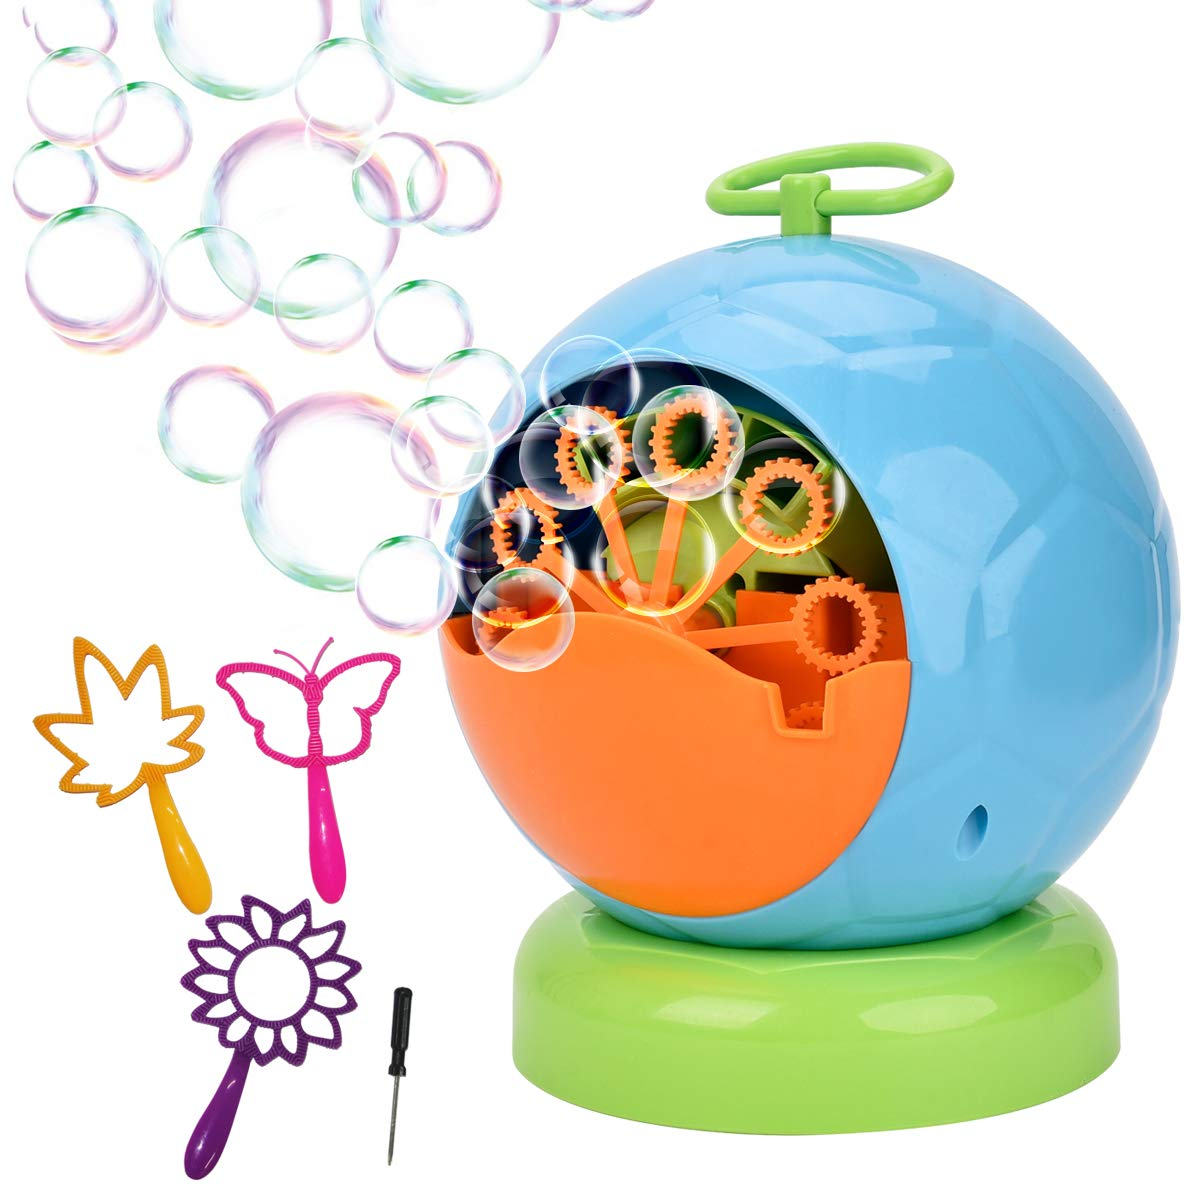 Showin Bubble Machine Automatic Bubble Blower Durable Bubble Maker Over 500 Colorful Bubble Per Minute For Kids Christmas Parties Wedding Use 4AA Battery Operated not included